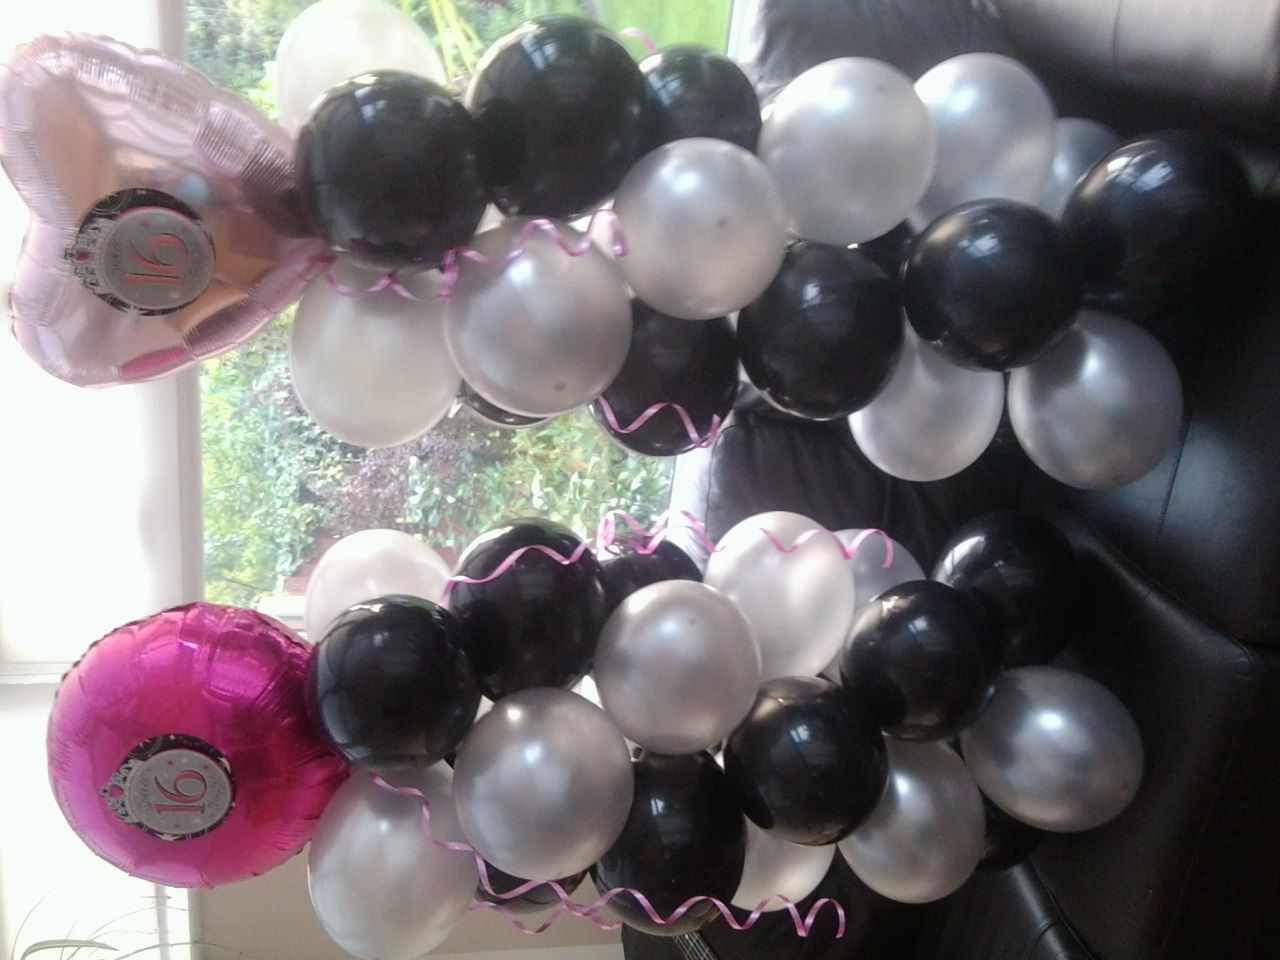 Sweet sixteen balloon decorations I made for my daughter